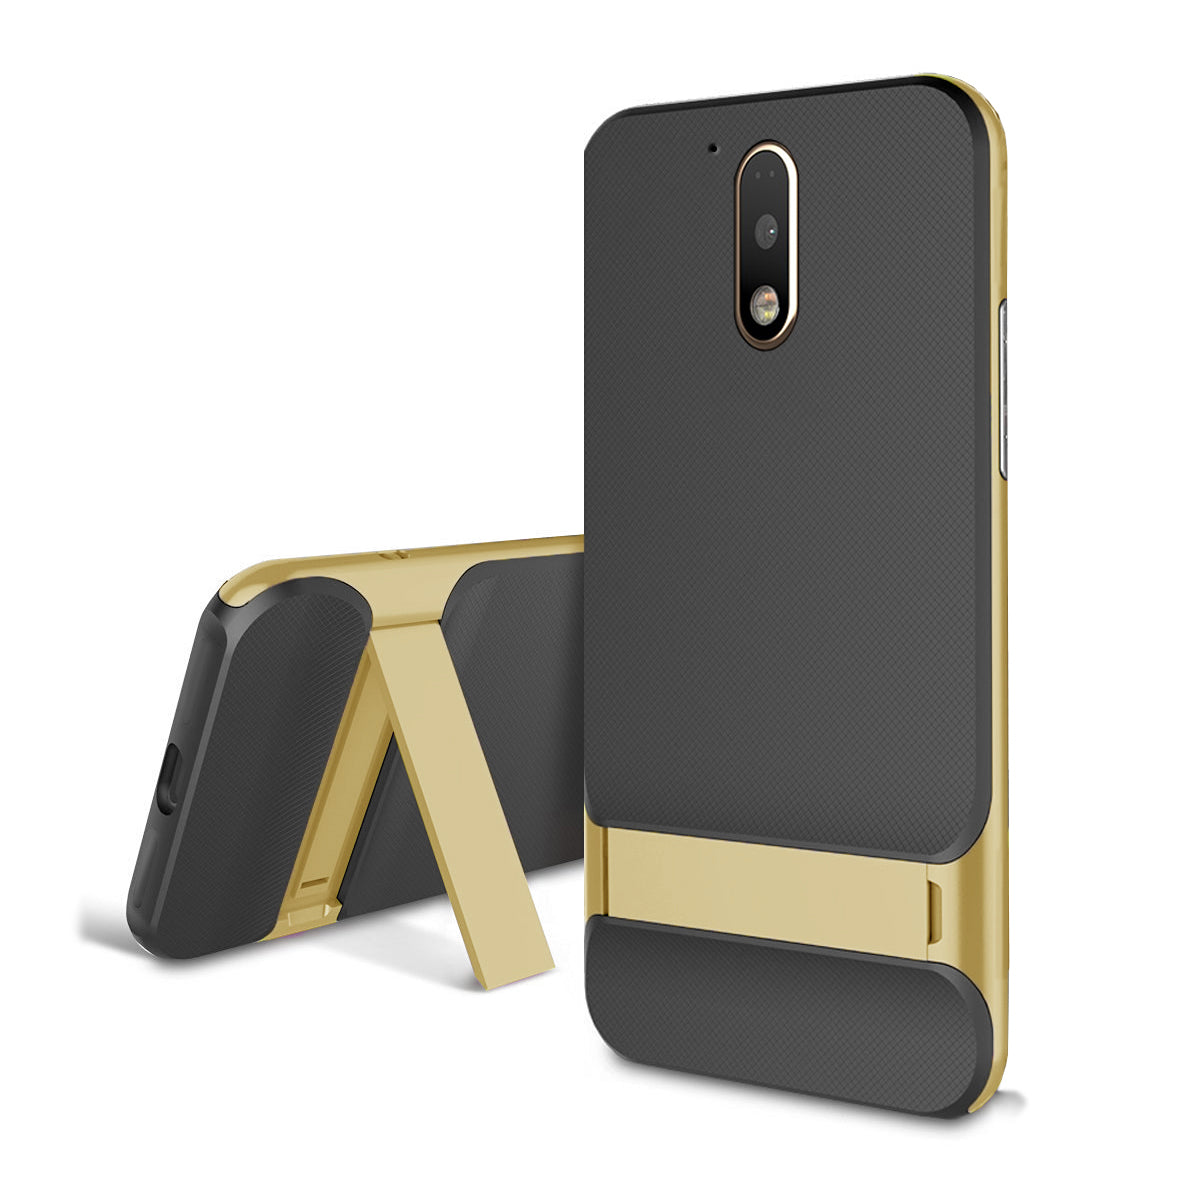 Shock Proof Dual Layer [Inbuilt Stand ] Case Cover for Moto G4 Plus - Mobizang